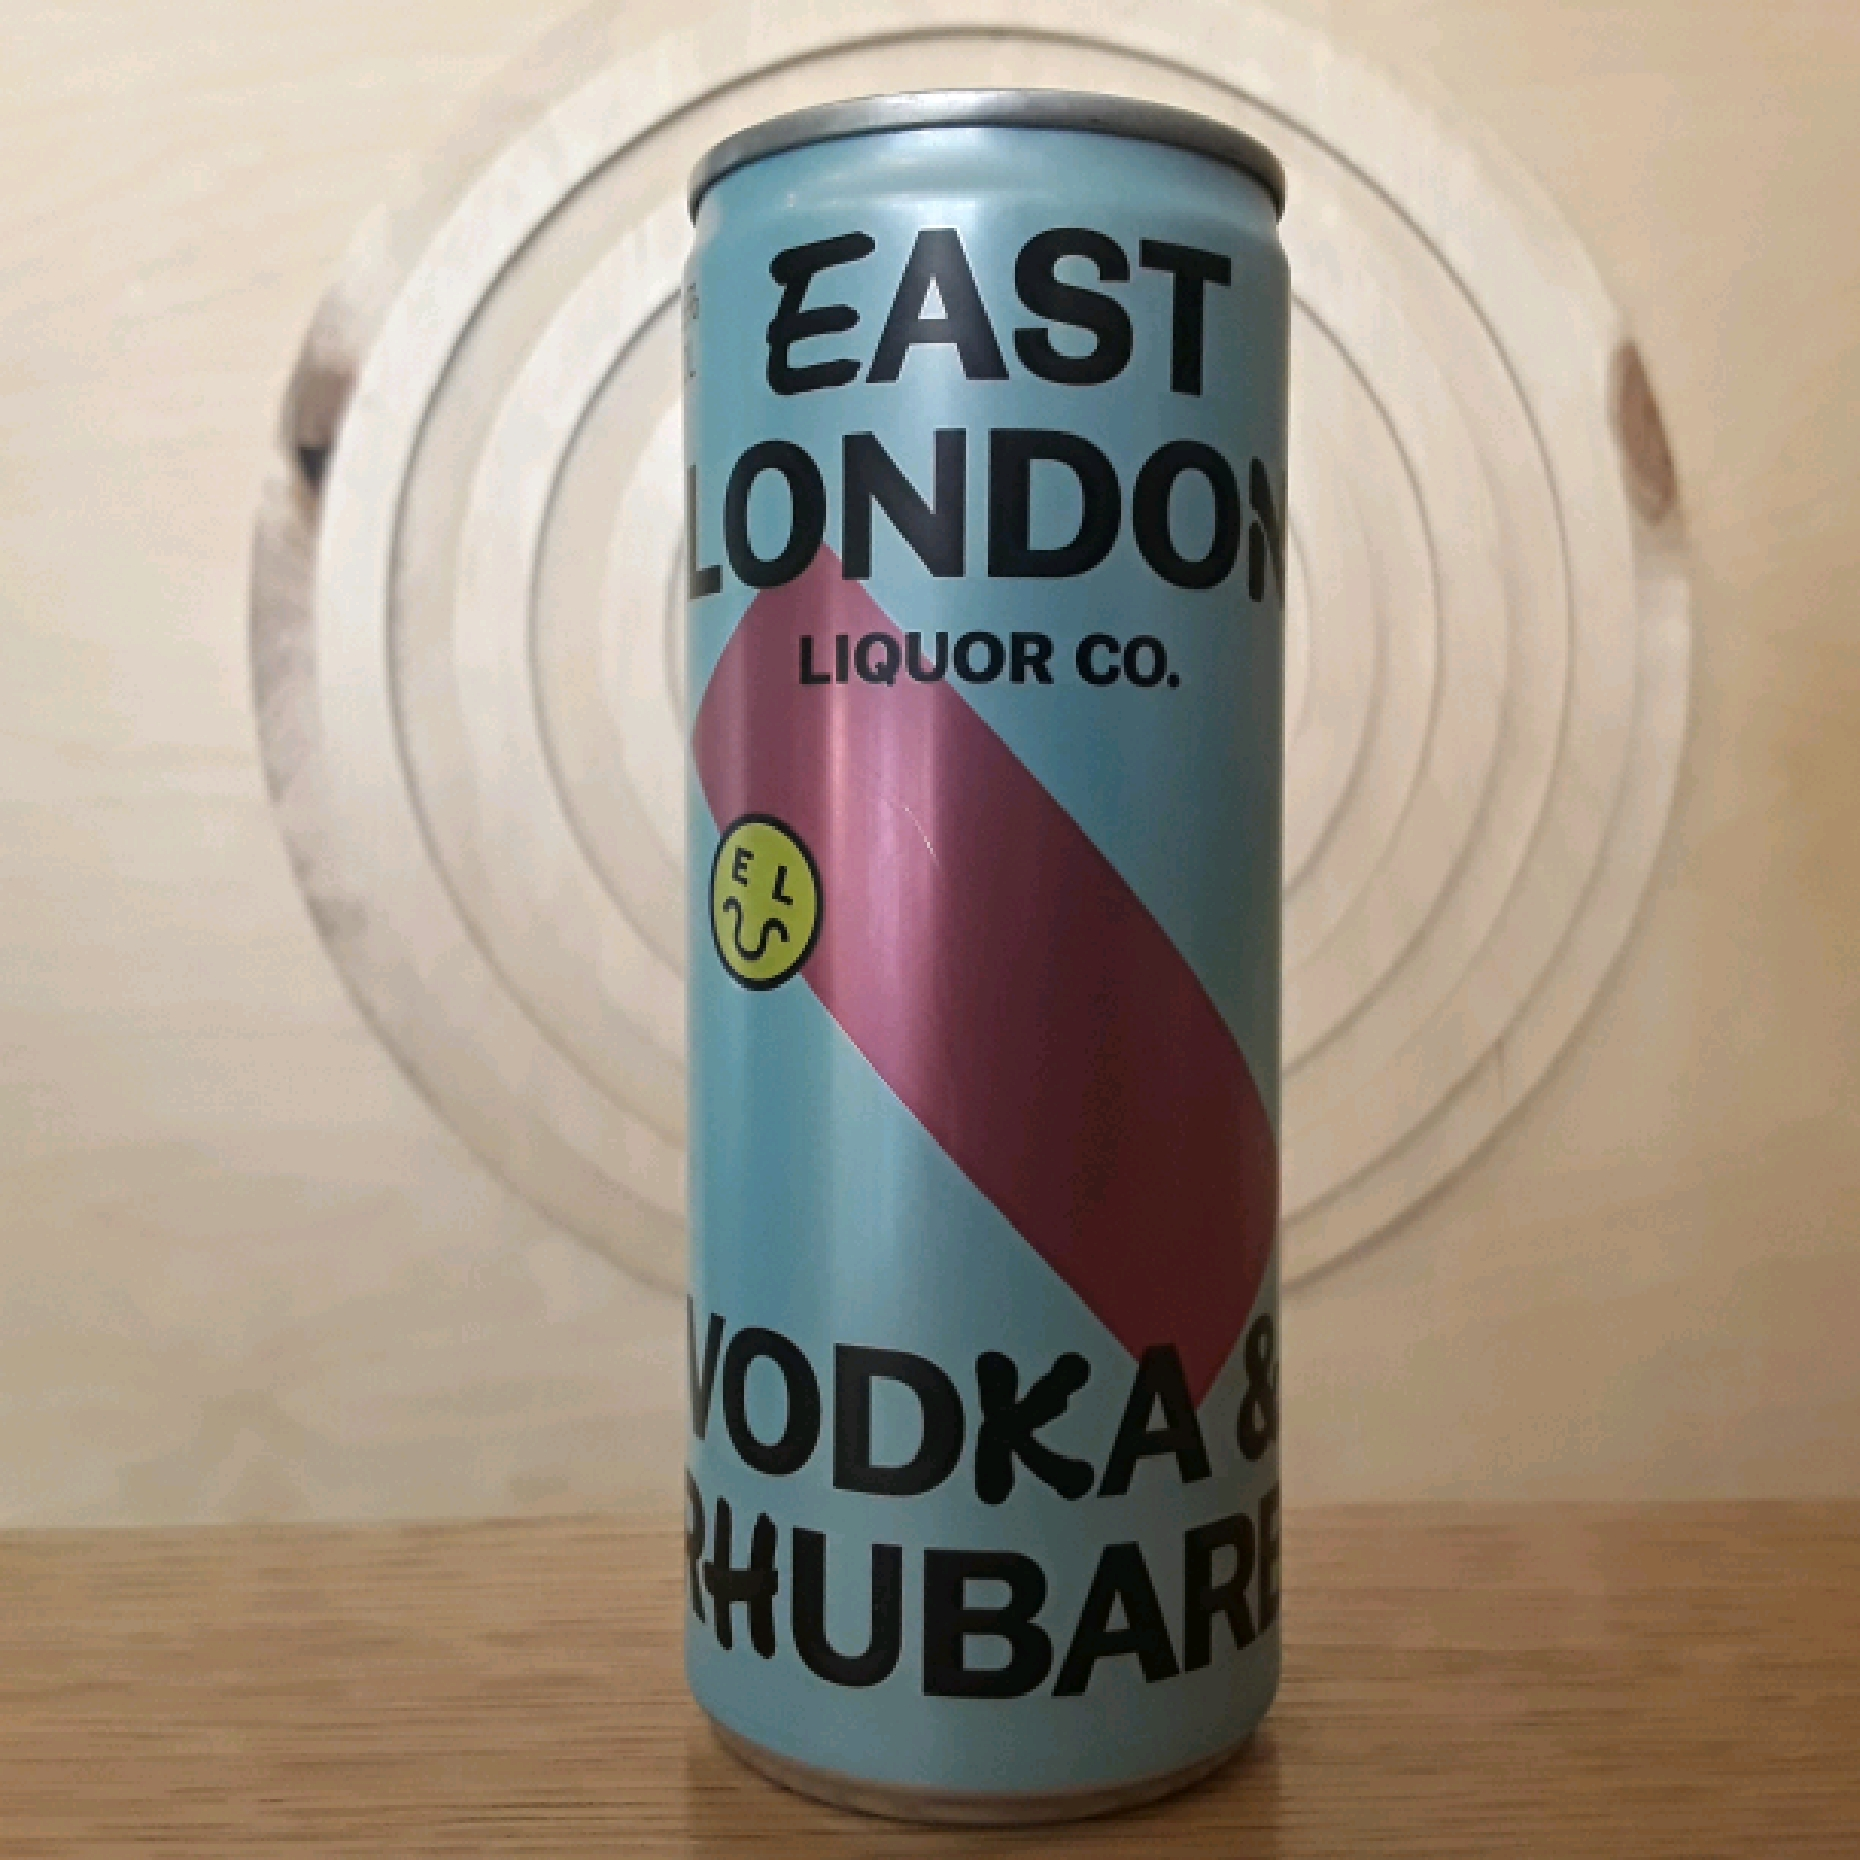 East London Liquor Co | Vodka & Rhubarb